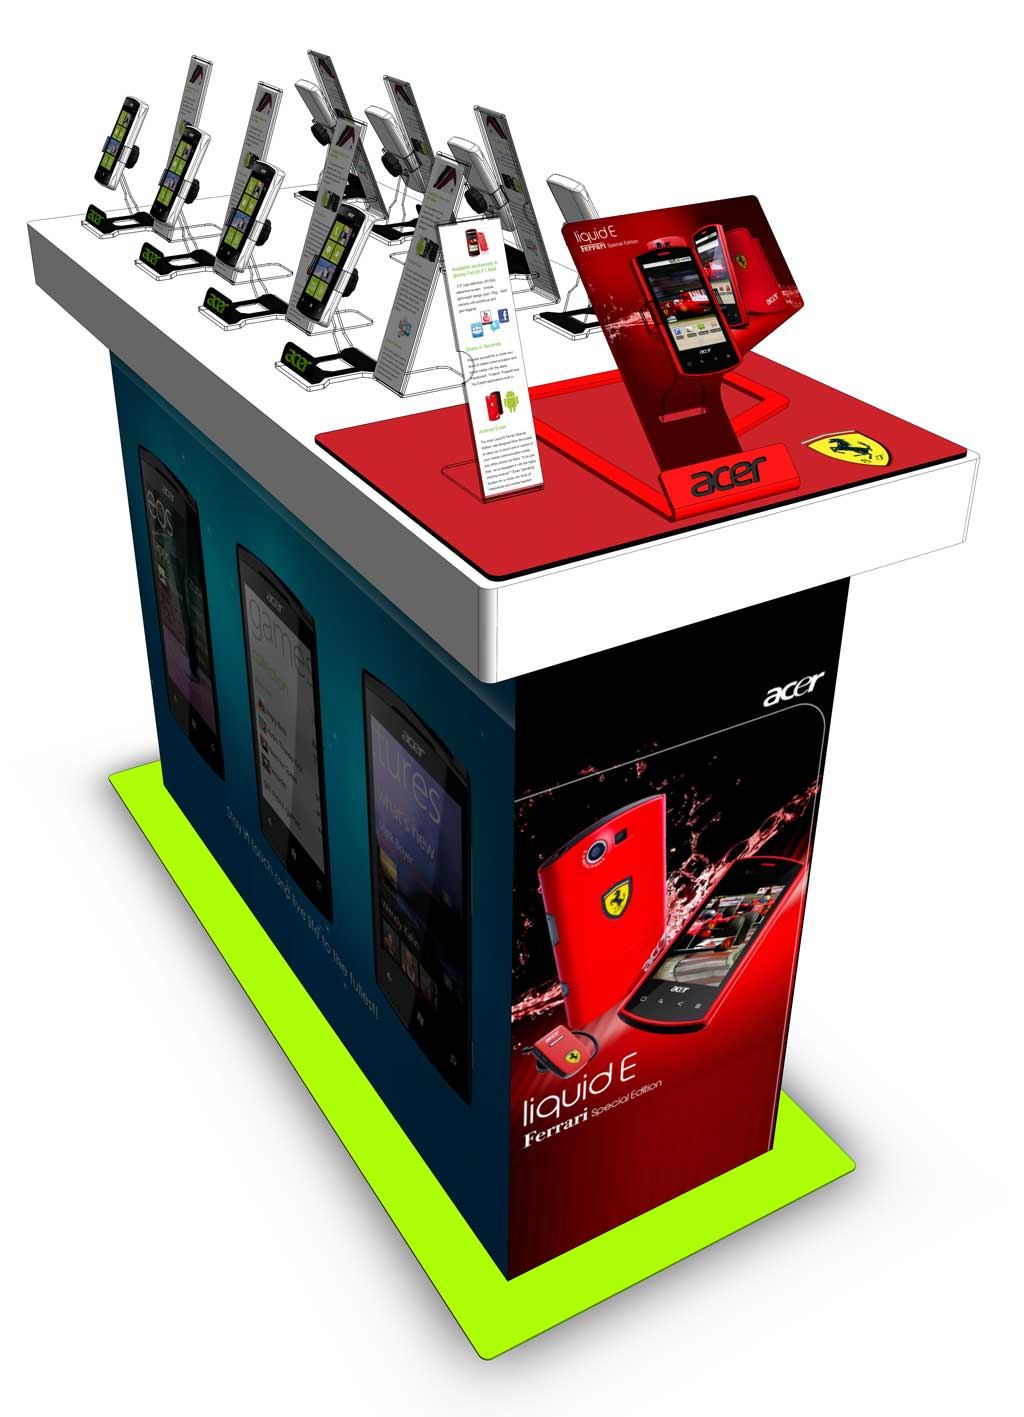 evolution-point-of-sale-displays-acer-1